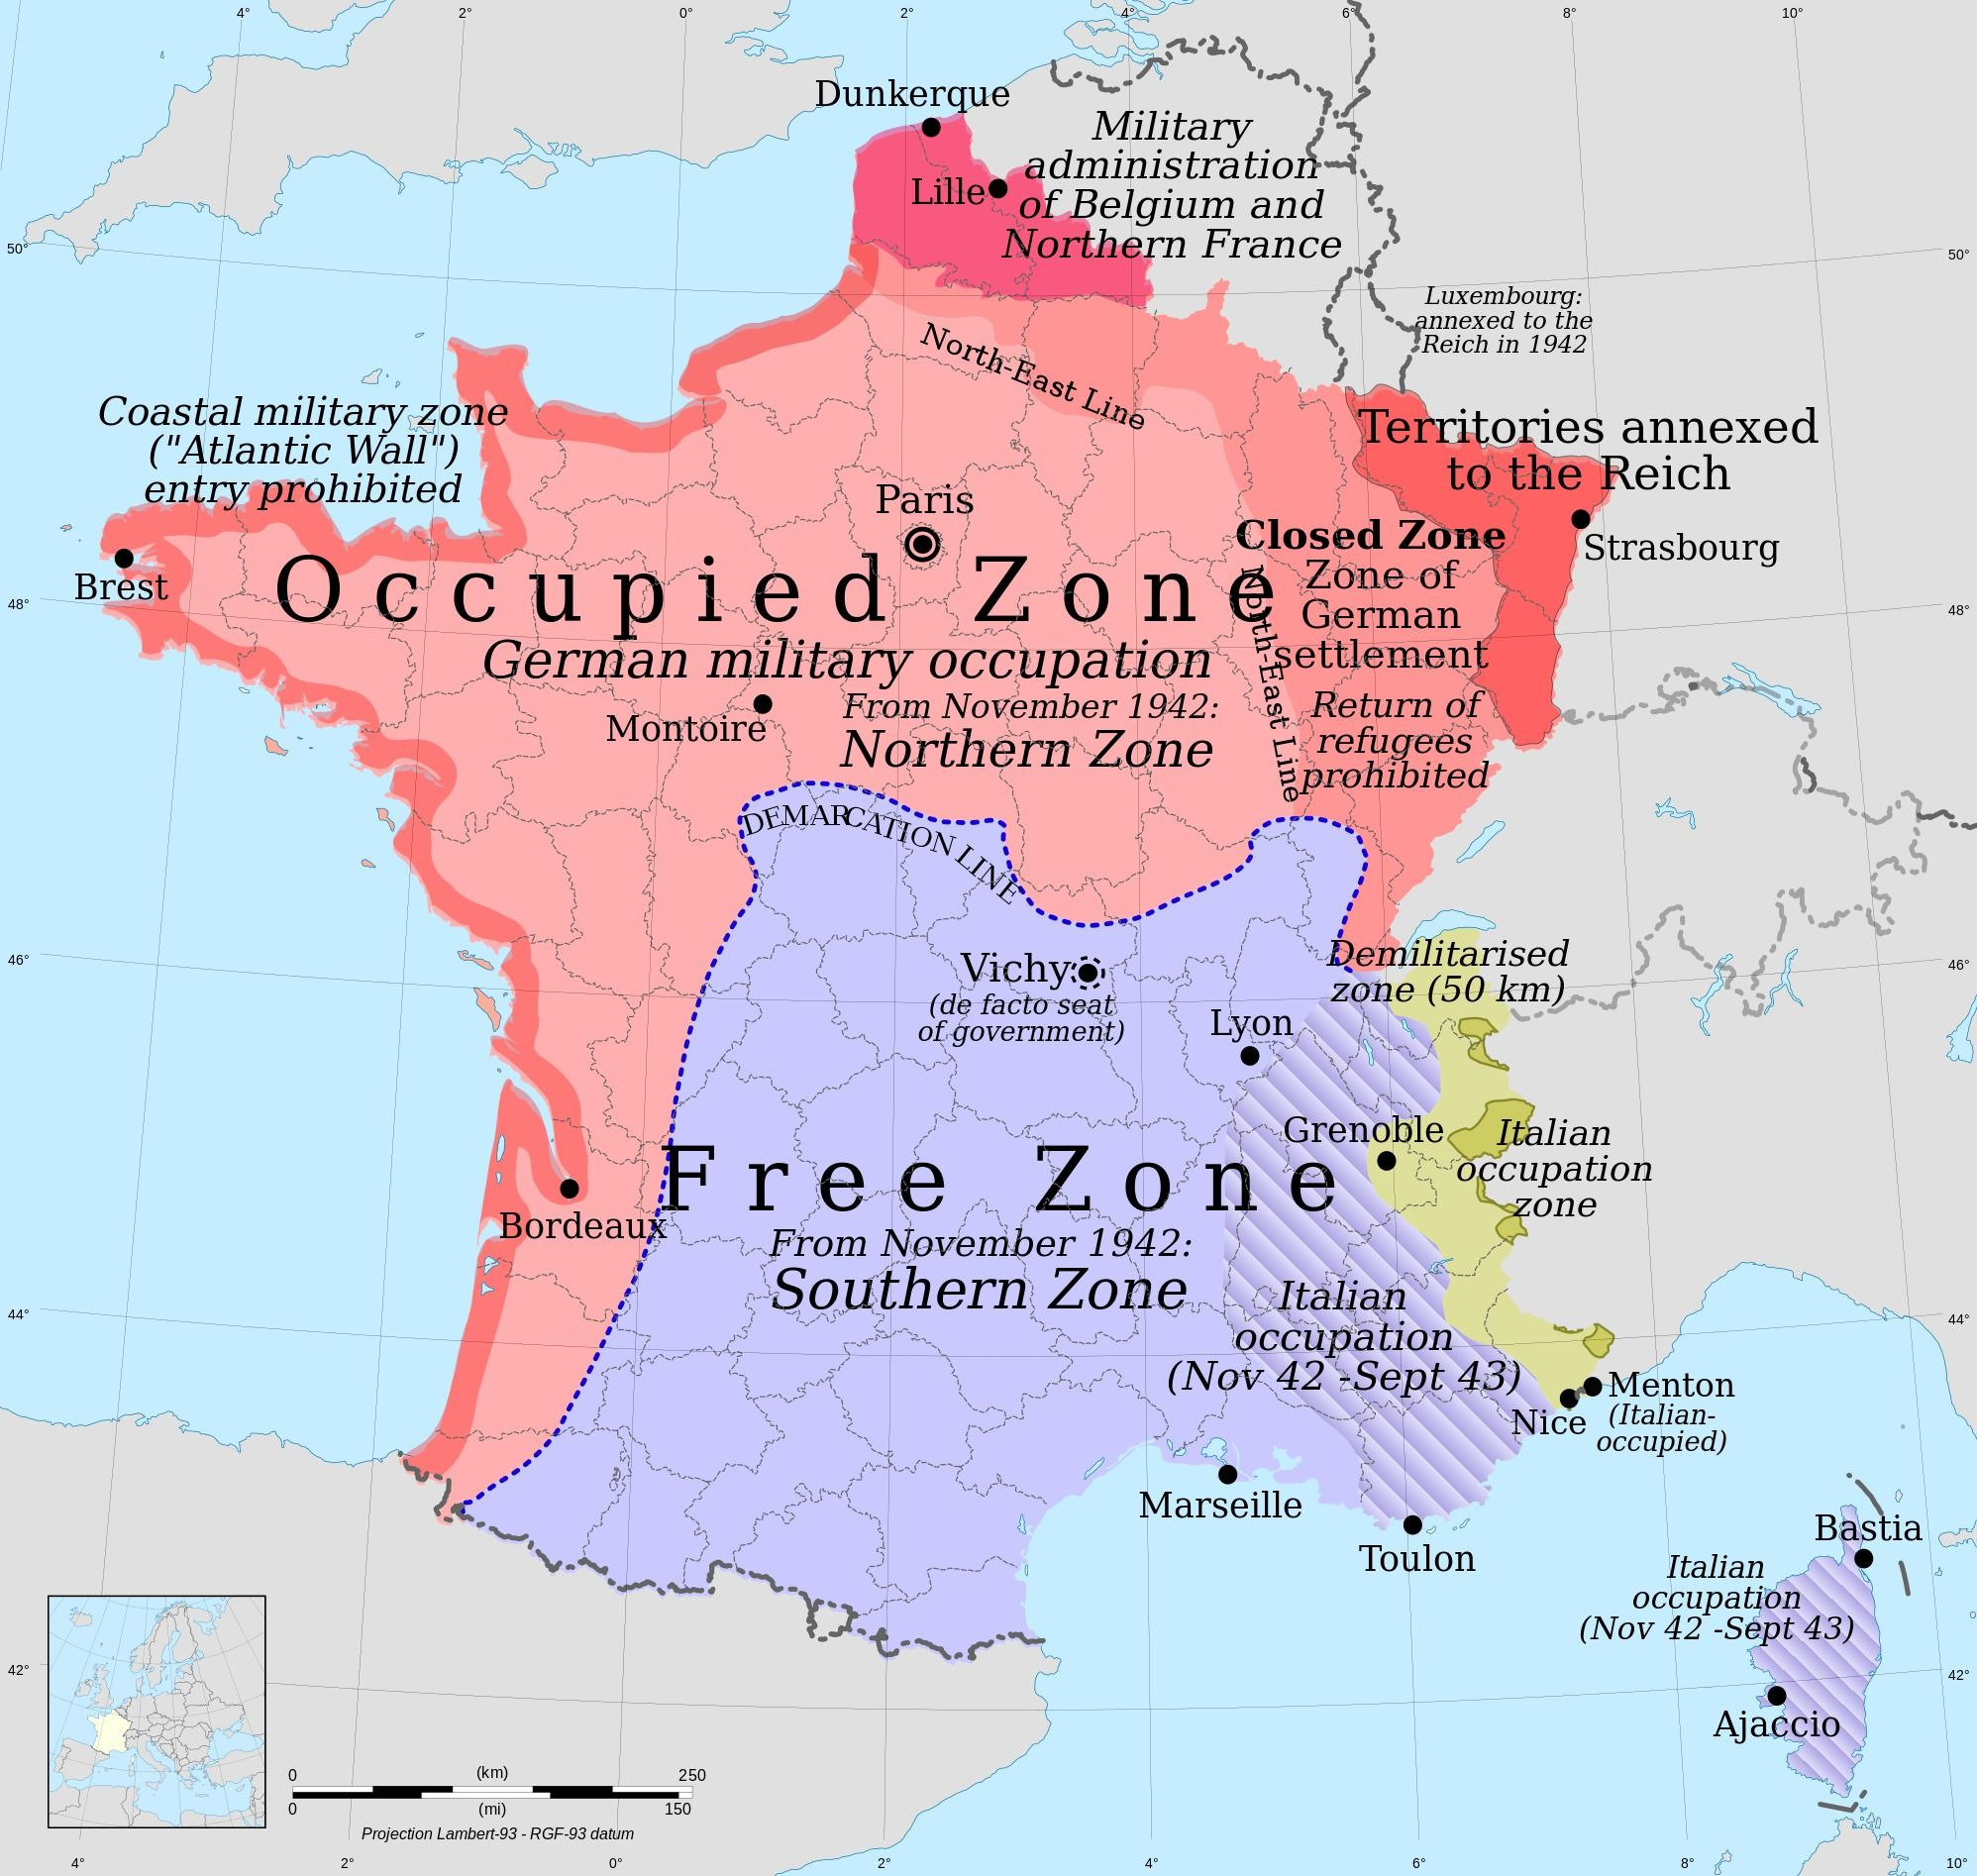 Occupation zones of France during the Second World War